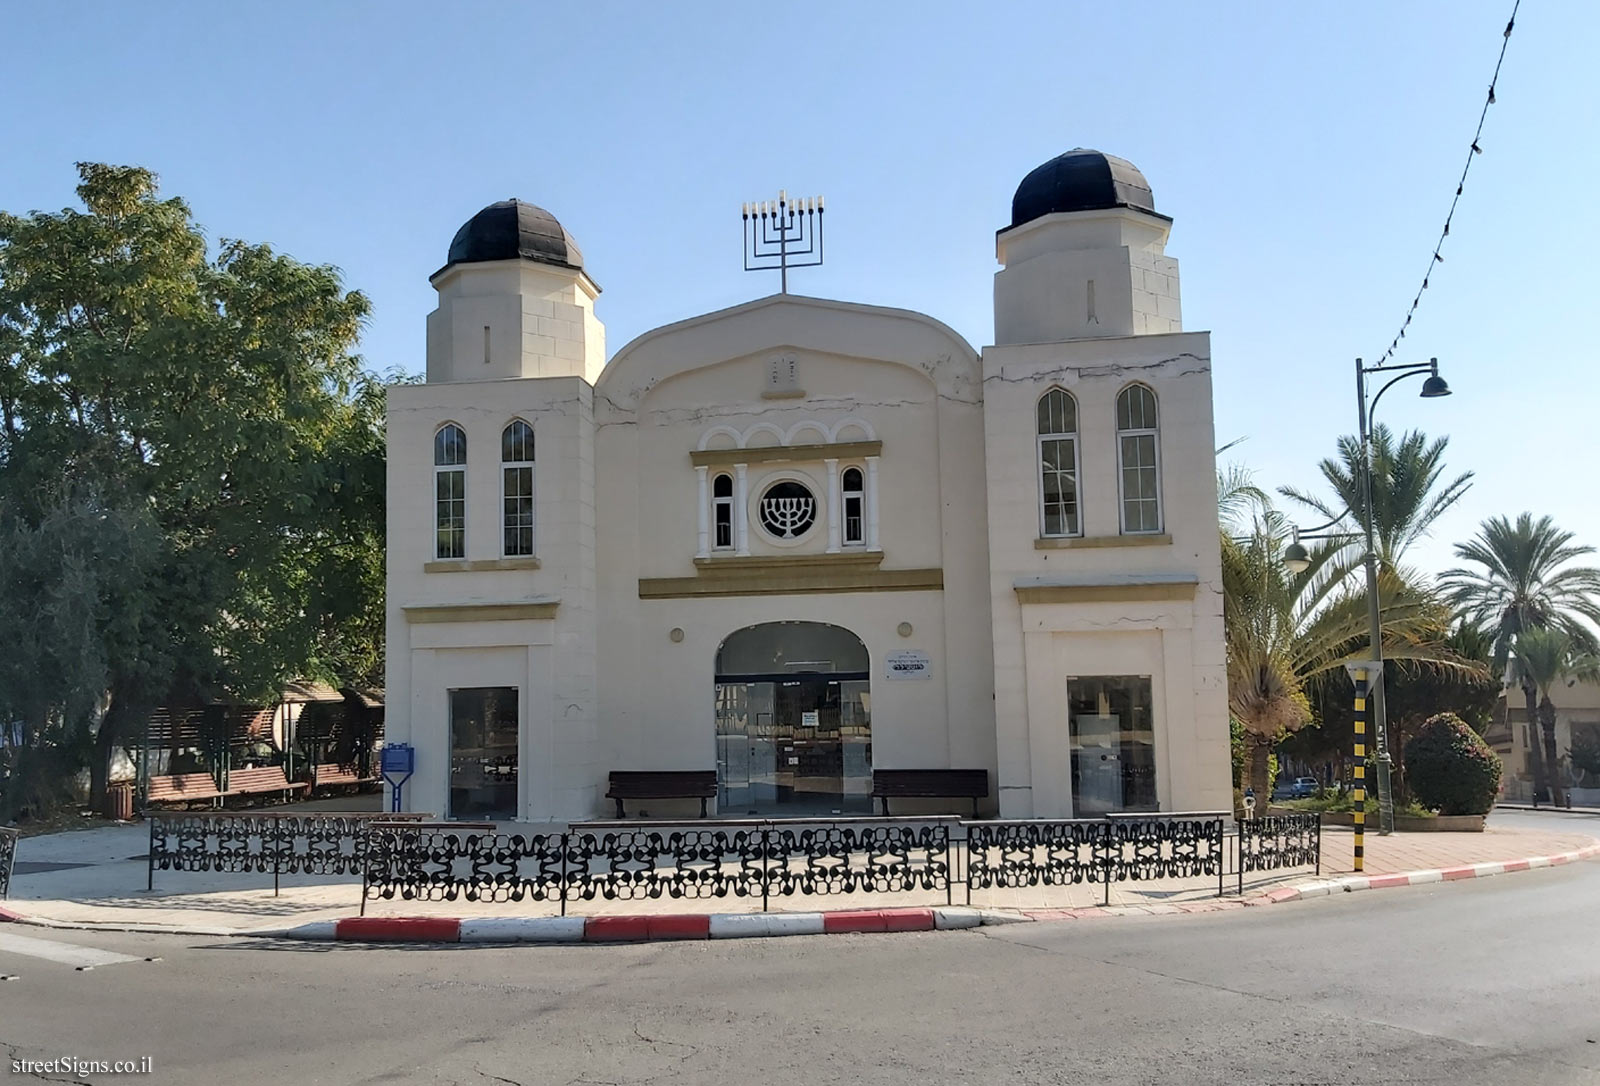 Heritage Sites in Israel - The Great Synagogue  - Mohiliver St 12, Mazkeret Batya, Israel